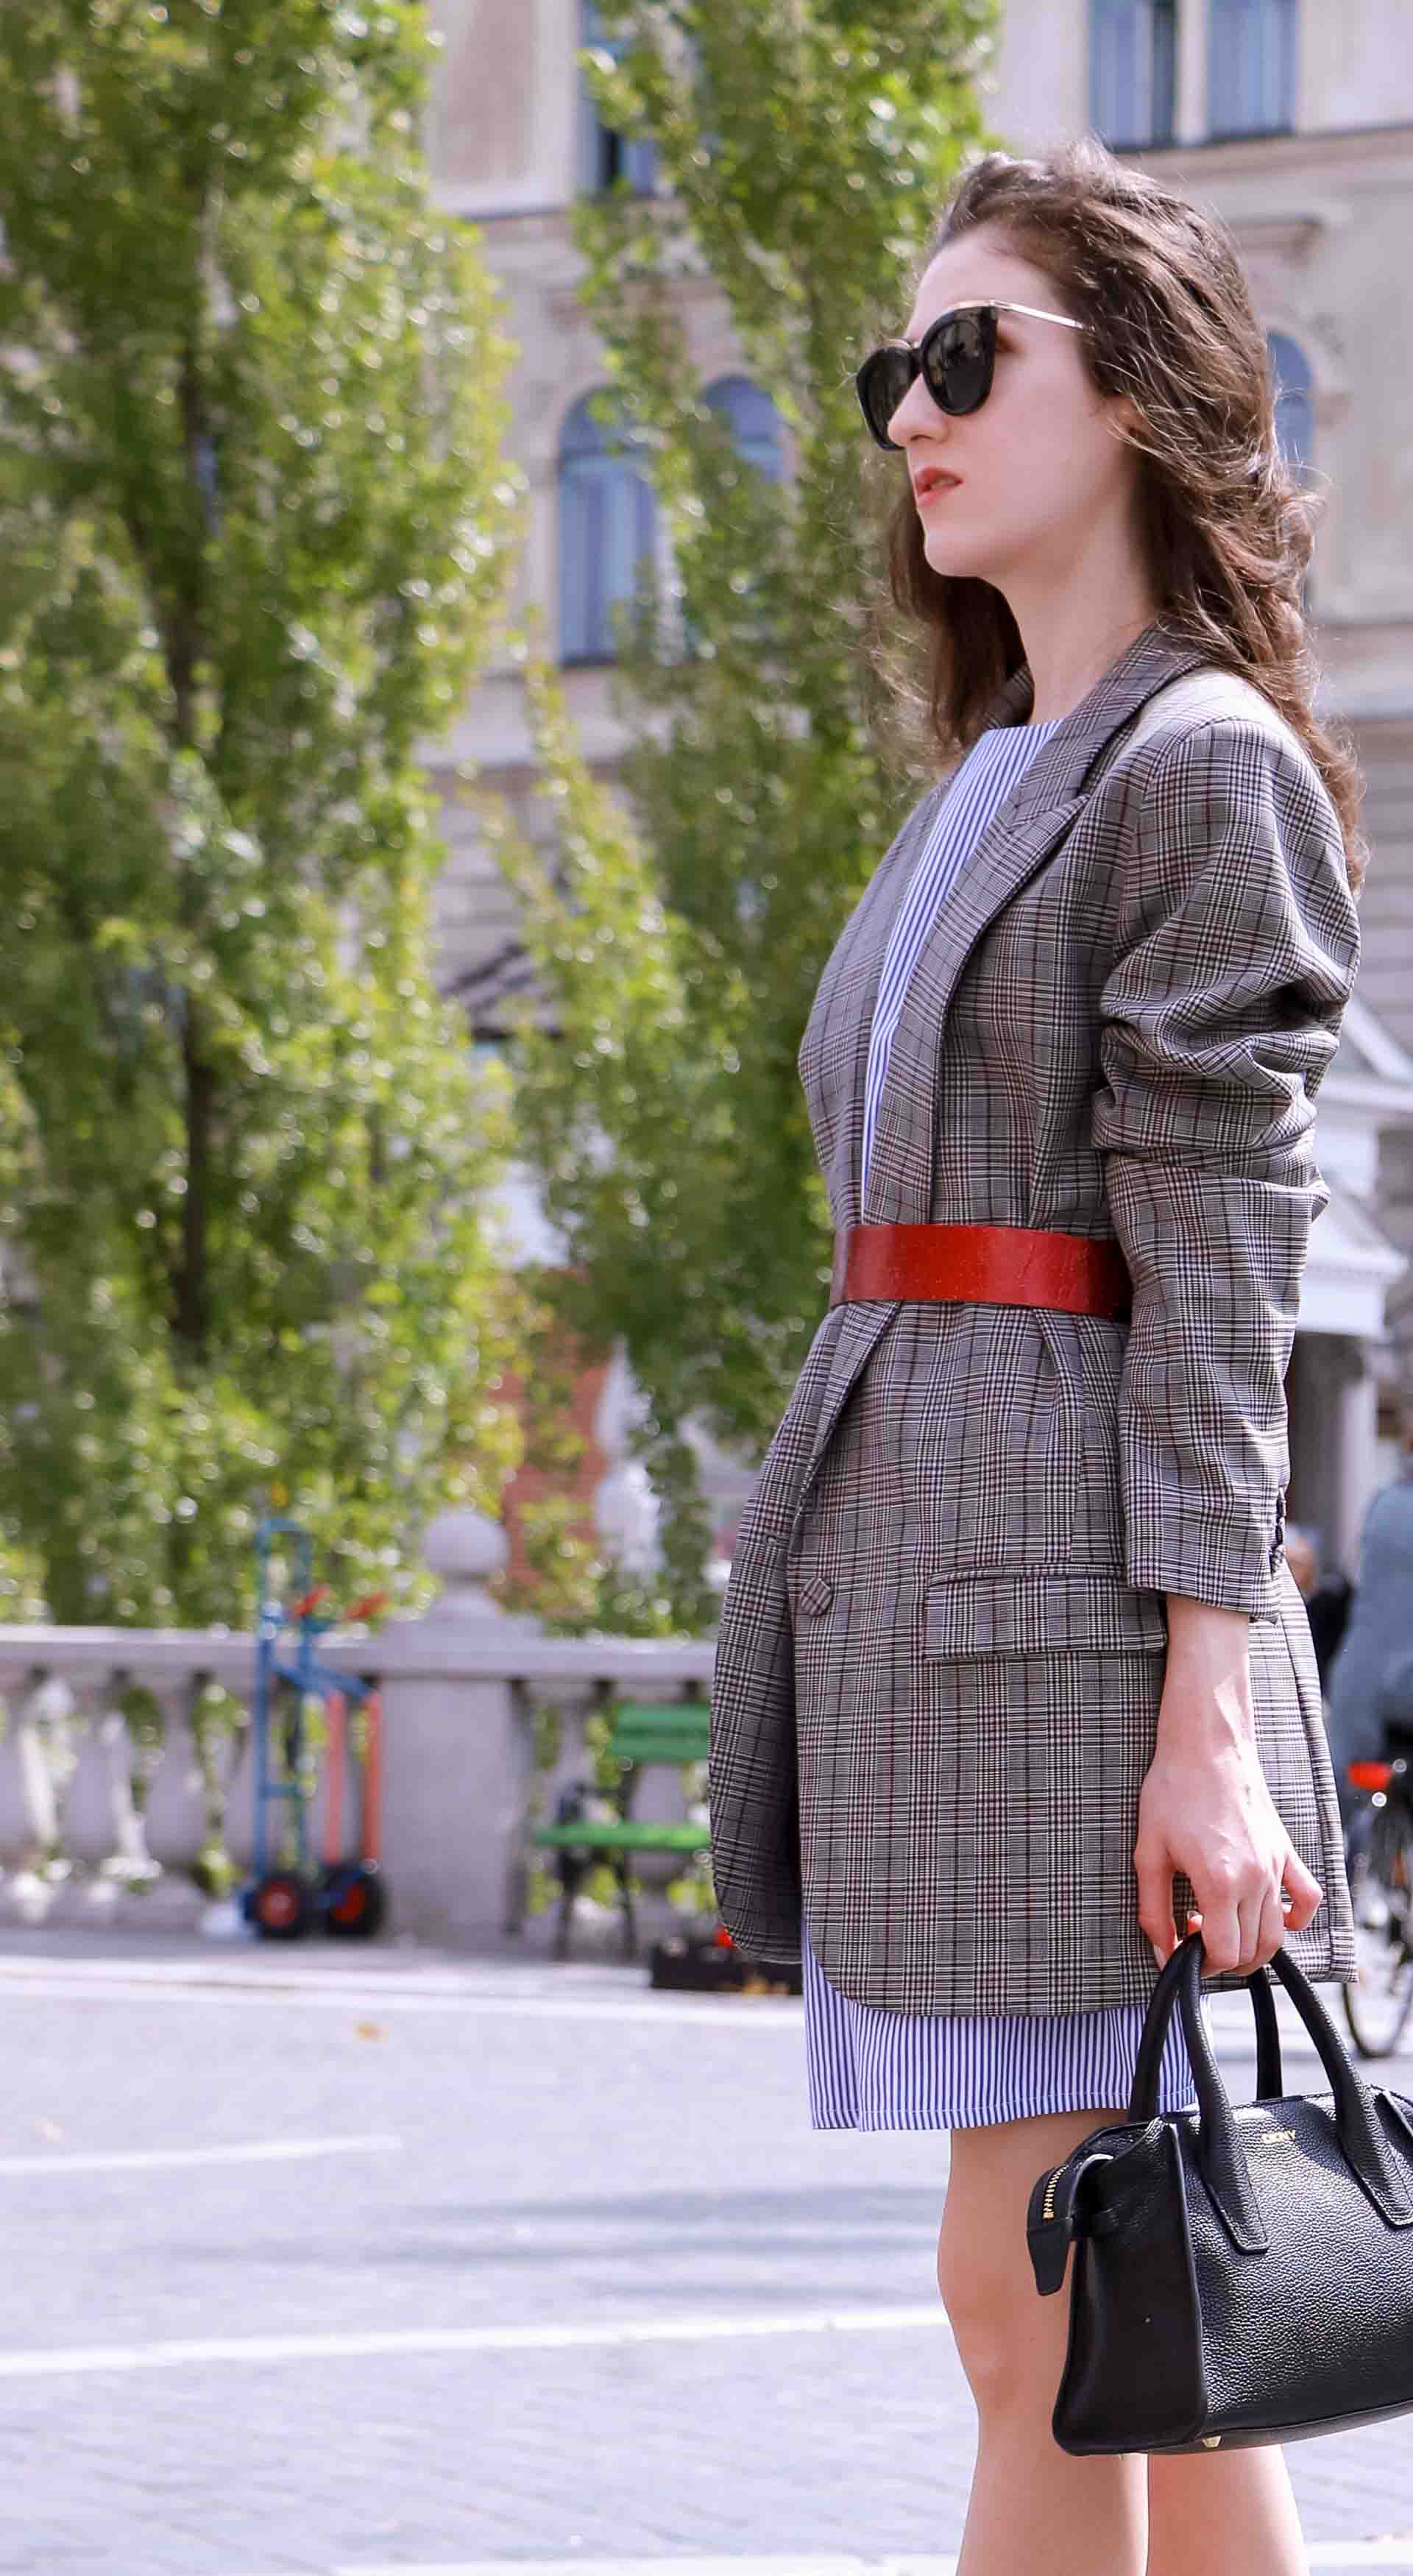 Veronika Lipar Fashion Blogger of Brunette from Wall Street dressed in Erika Cavallini plaid blazer, blue striped shirtdress, red belt, brown court shoes, black top handle bag, Le Specs black sunglasses while standing alone in Ljubljana